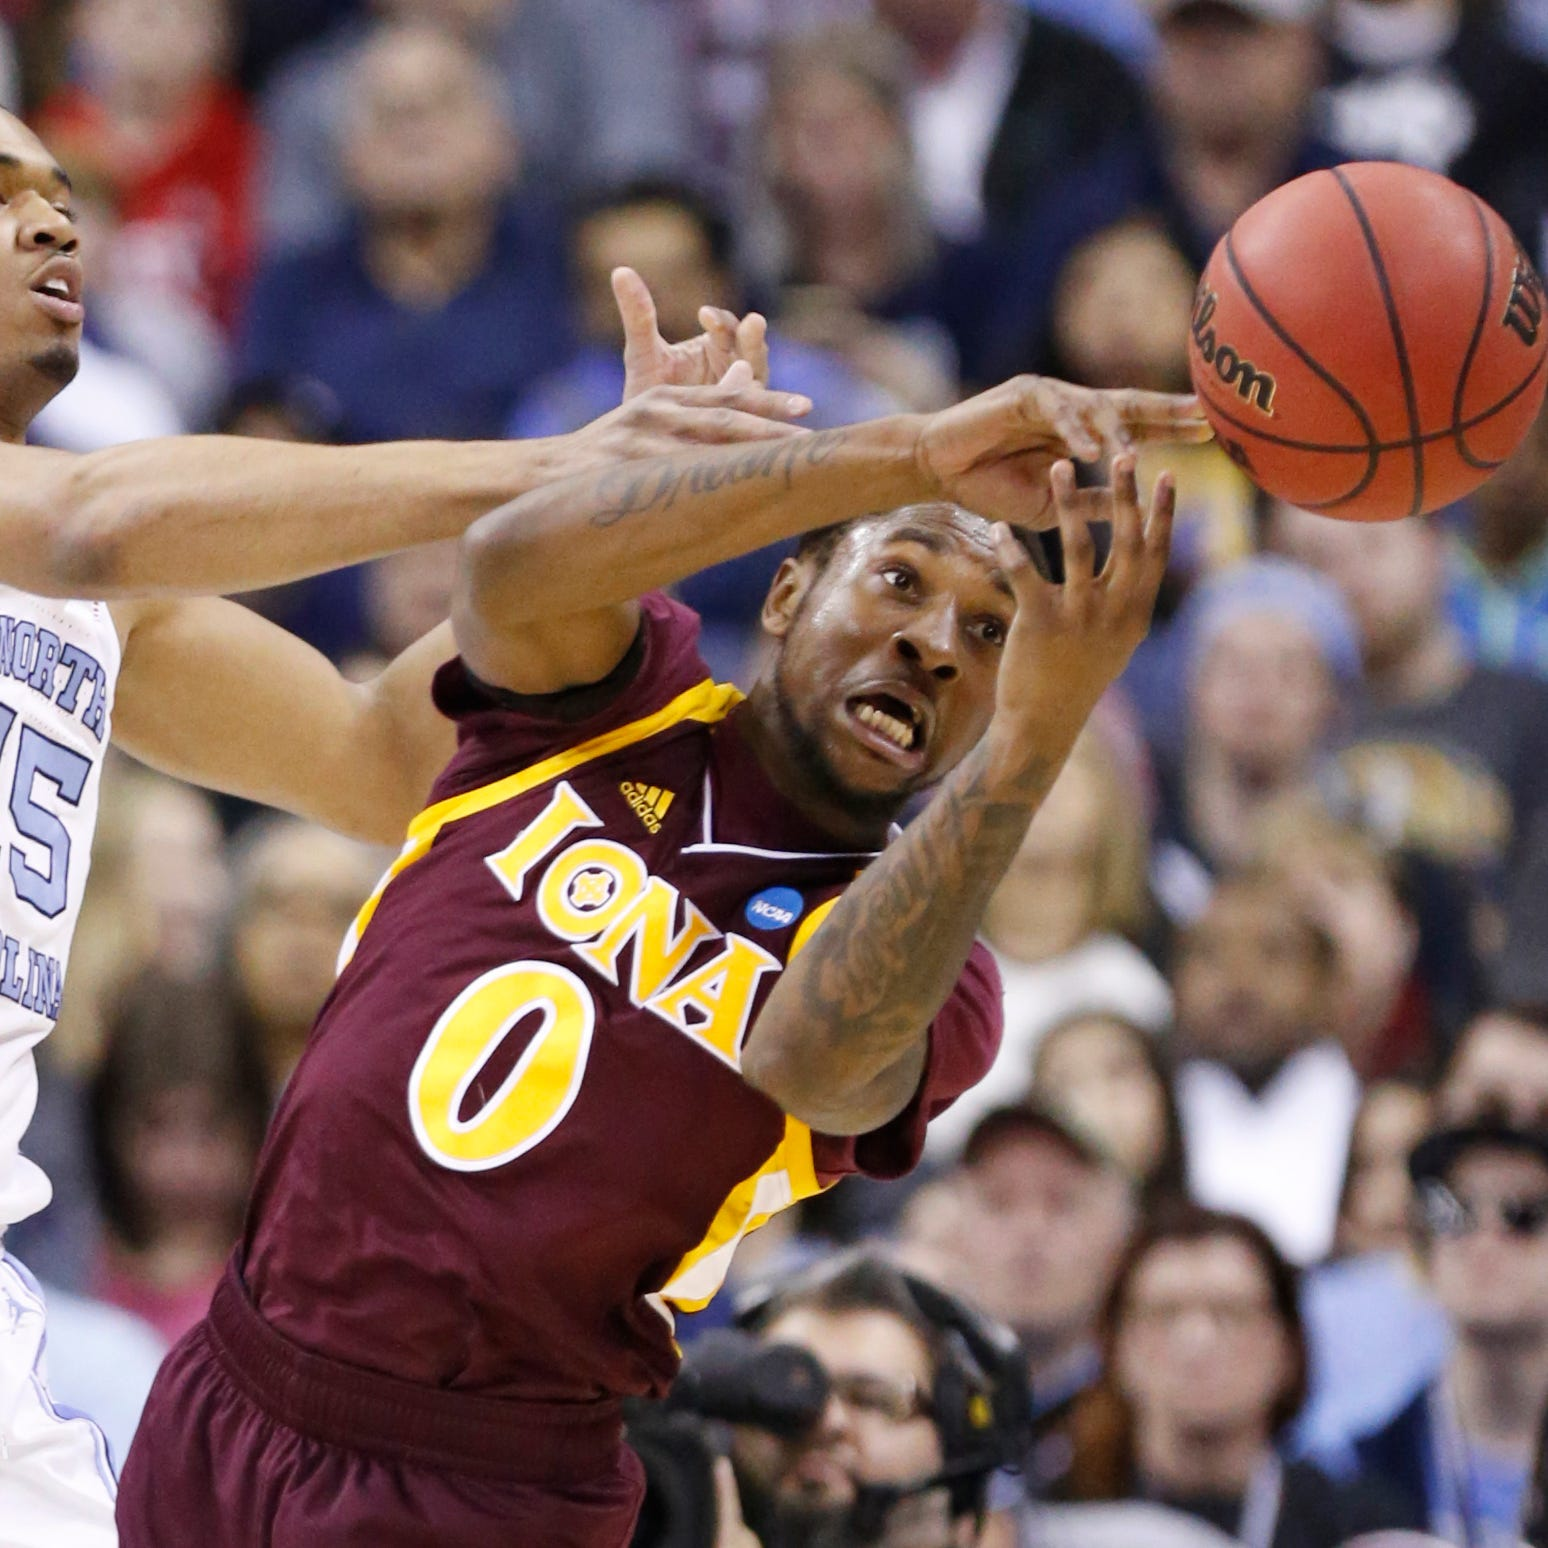 NCAA Tournament: Iona runs out of gas, falls to top seed North Carolina in first round